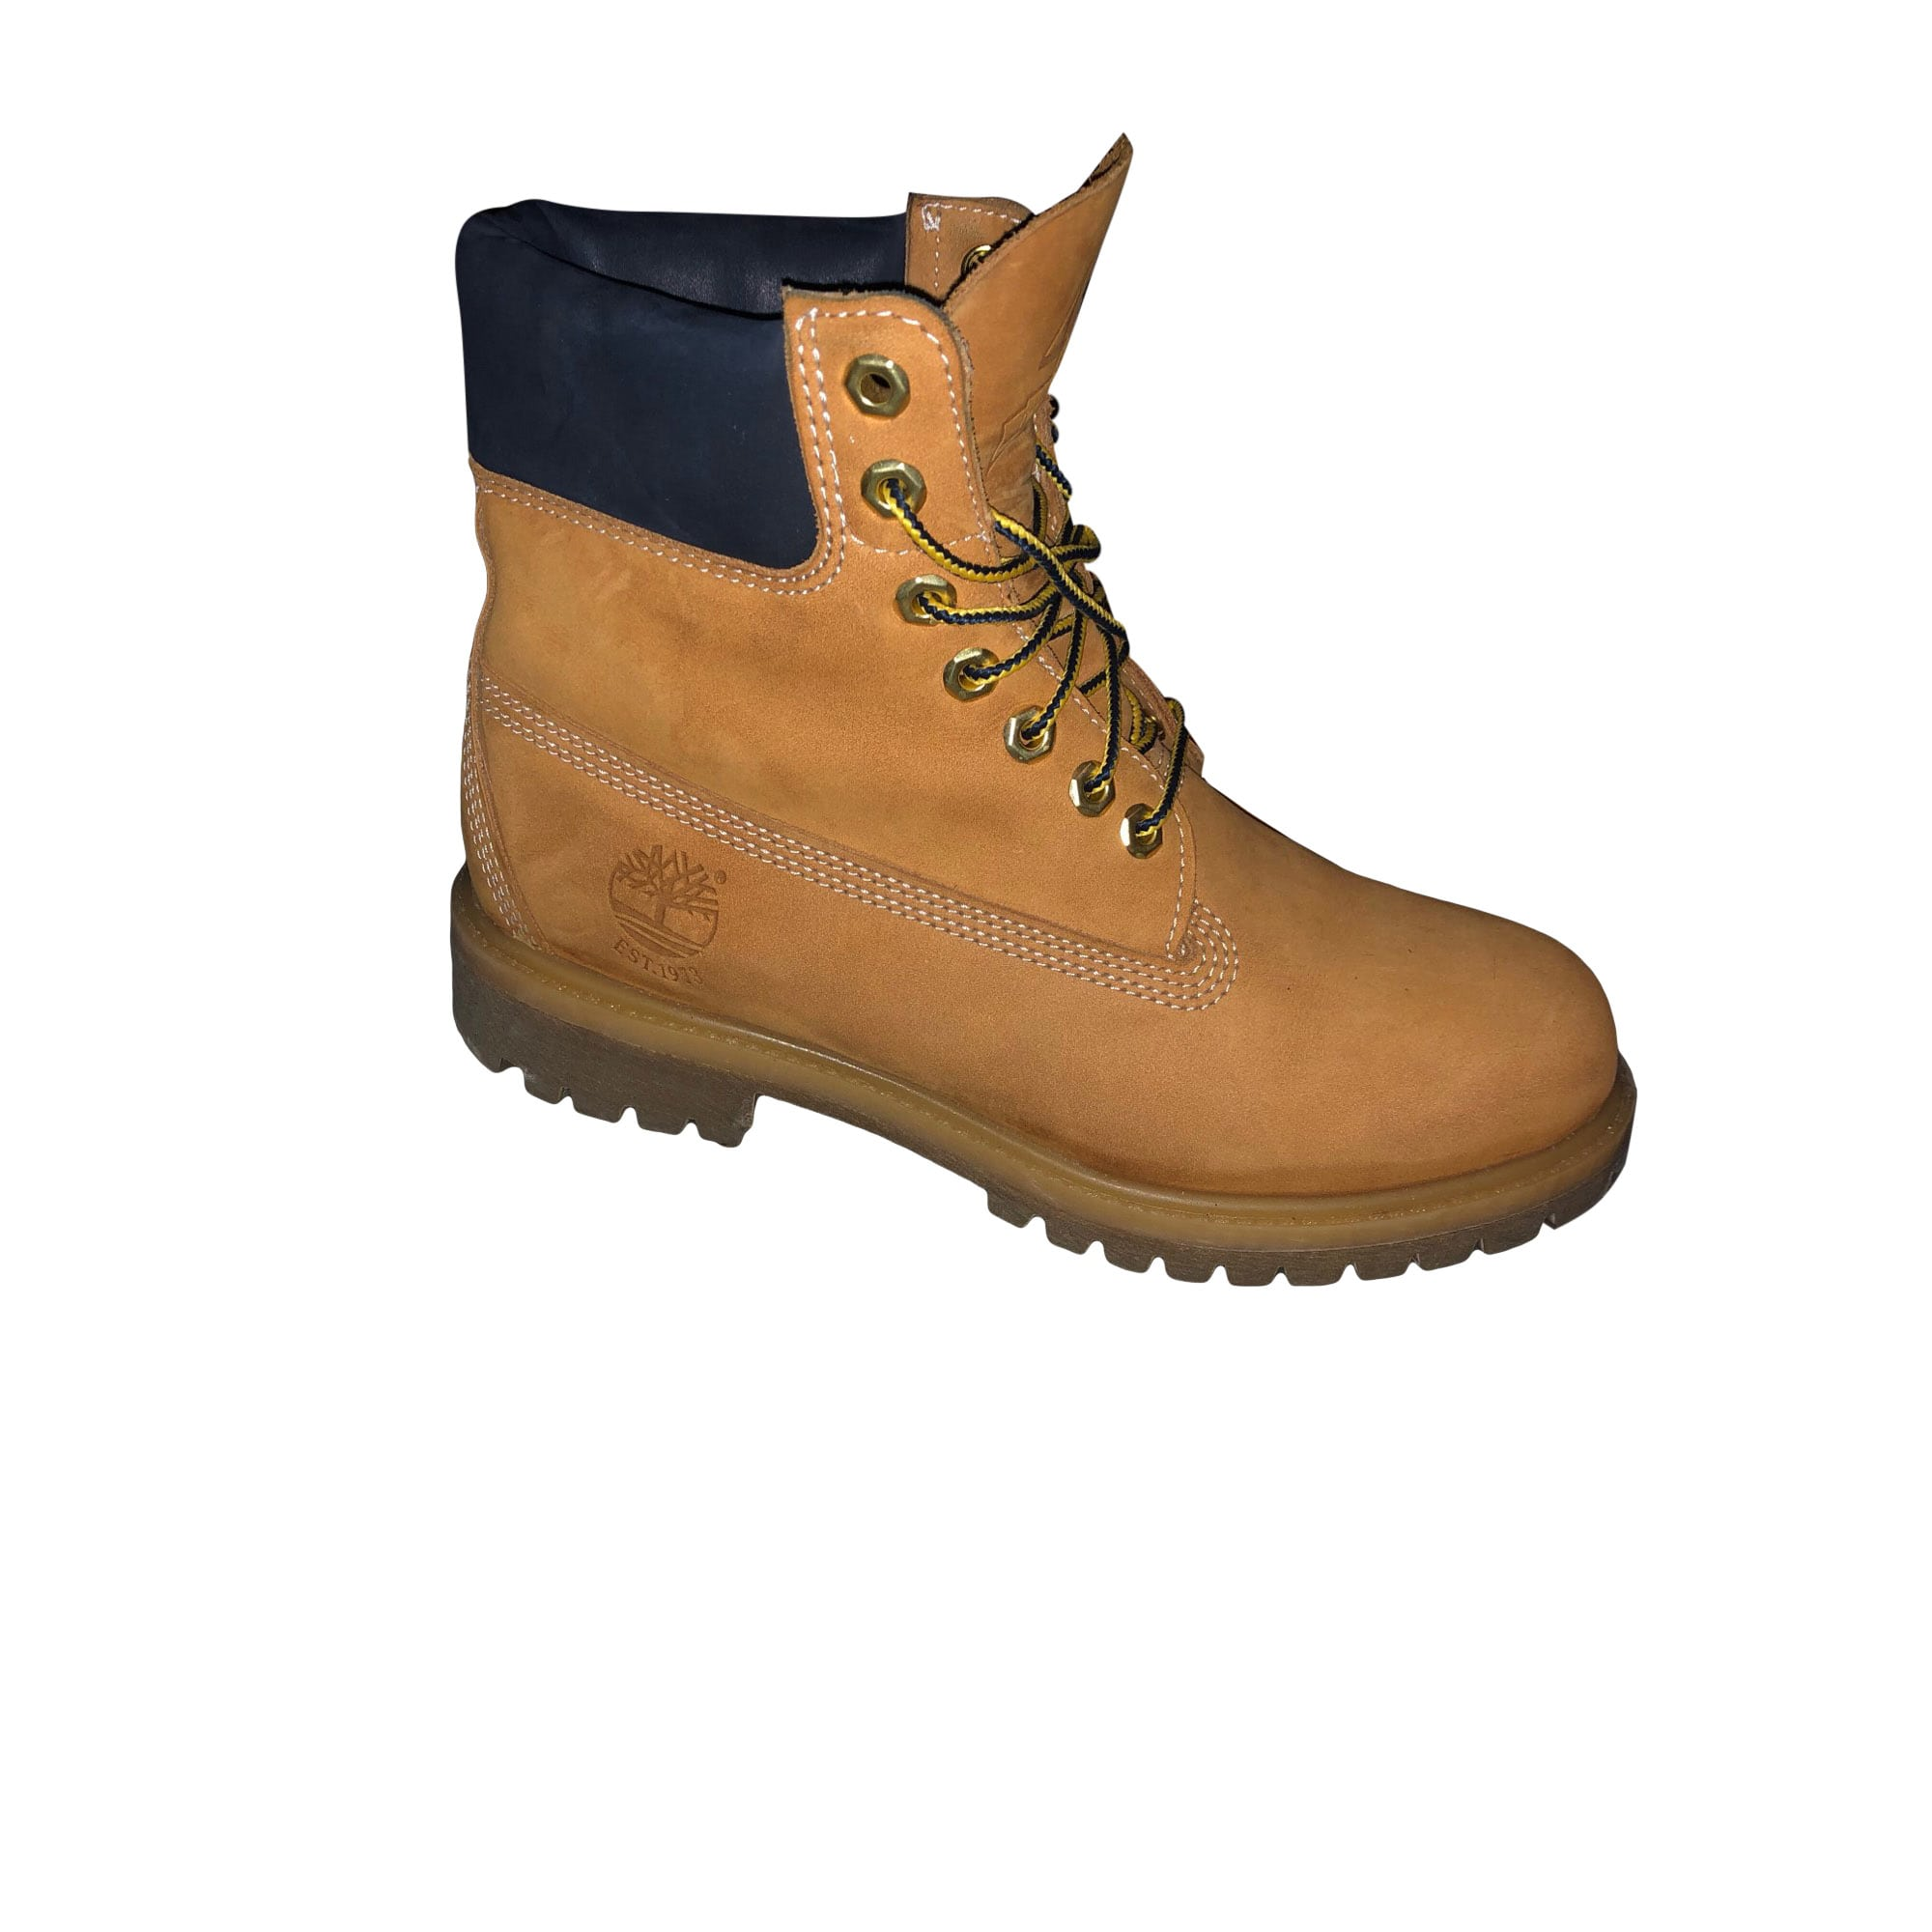 50254814cff Chaussures à lacets TIMBERLAND 40 jaune - 8369406